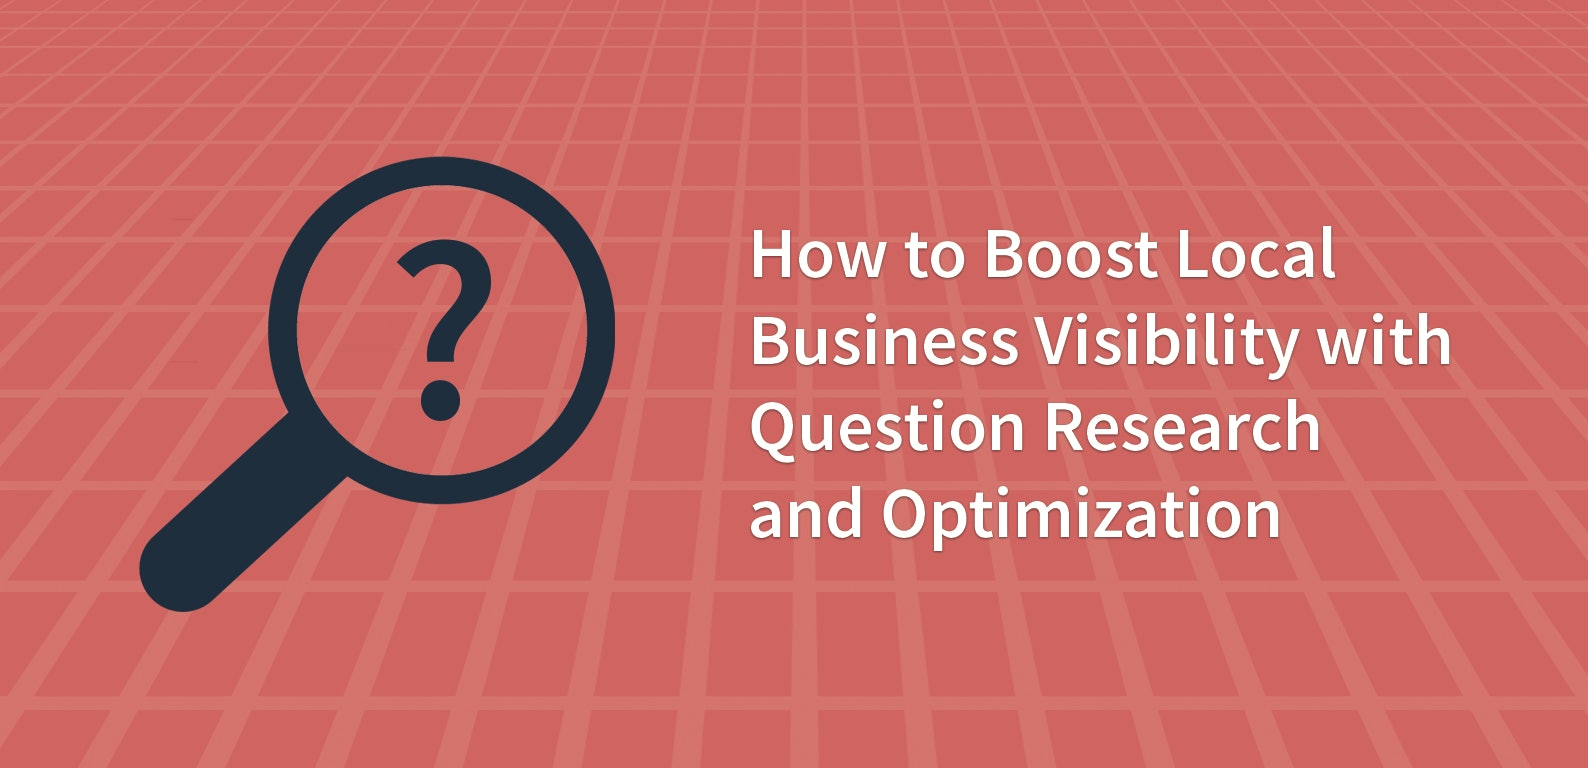 How to Boost Local Business Visibility with Question Research and Optimization